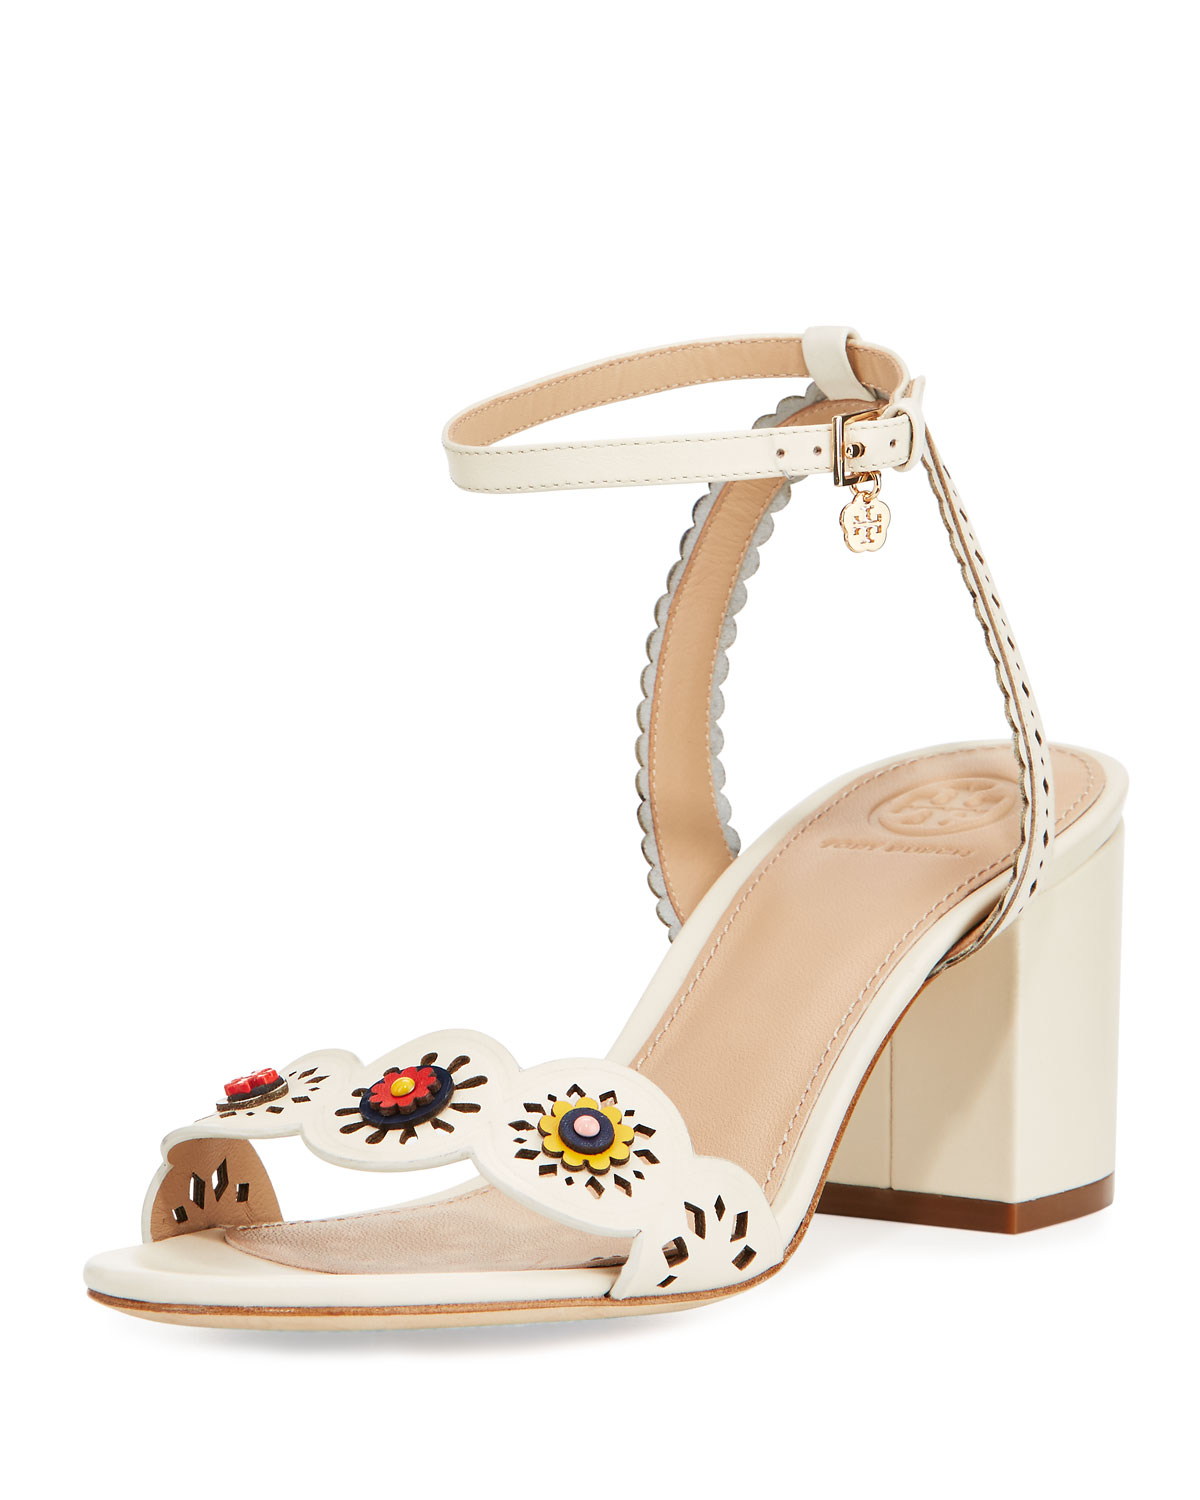 2f429a5f5773 Tory Burch Marguerite Perforated Low-Heel Sandal